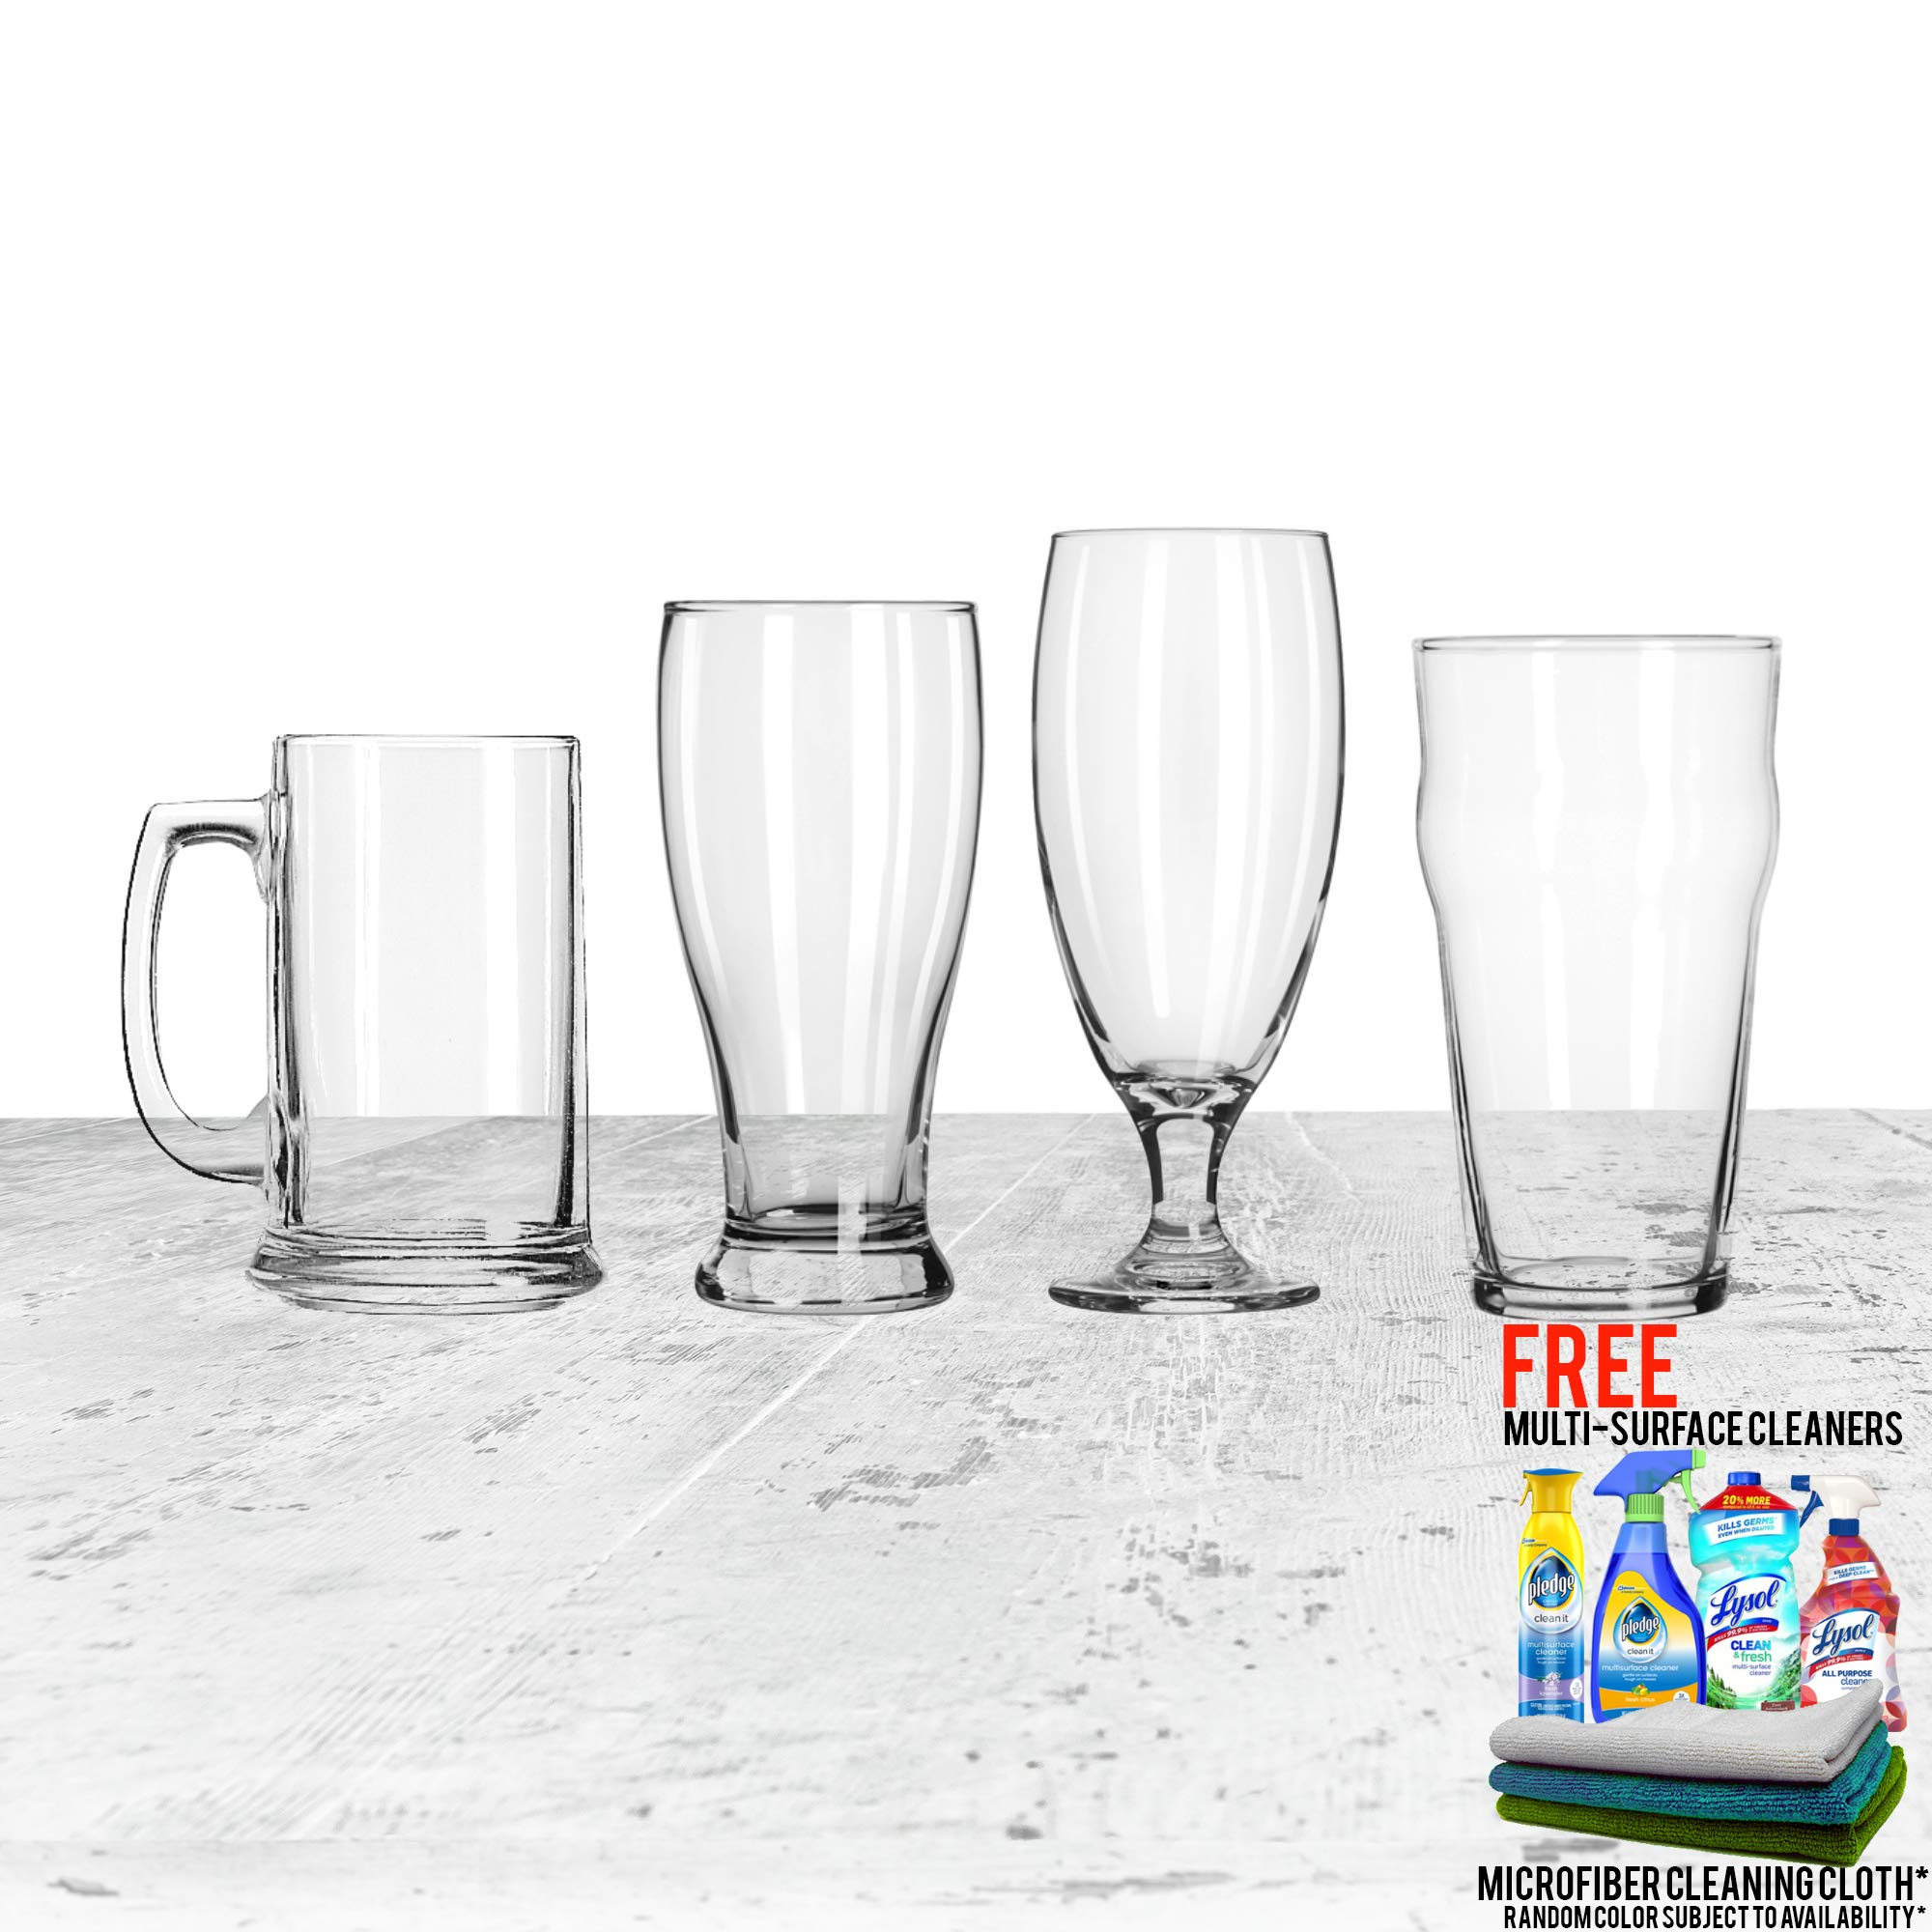 4-Piece Assorted Variety Beer Glass Set, (1 - Classic Pilsner, 1 - English Pub, 1 - Belgian Ale, 1 - Lager Stein) Bundled with Free Microfiber Cleaning Cloth and Multi Surface Cleaner